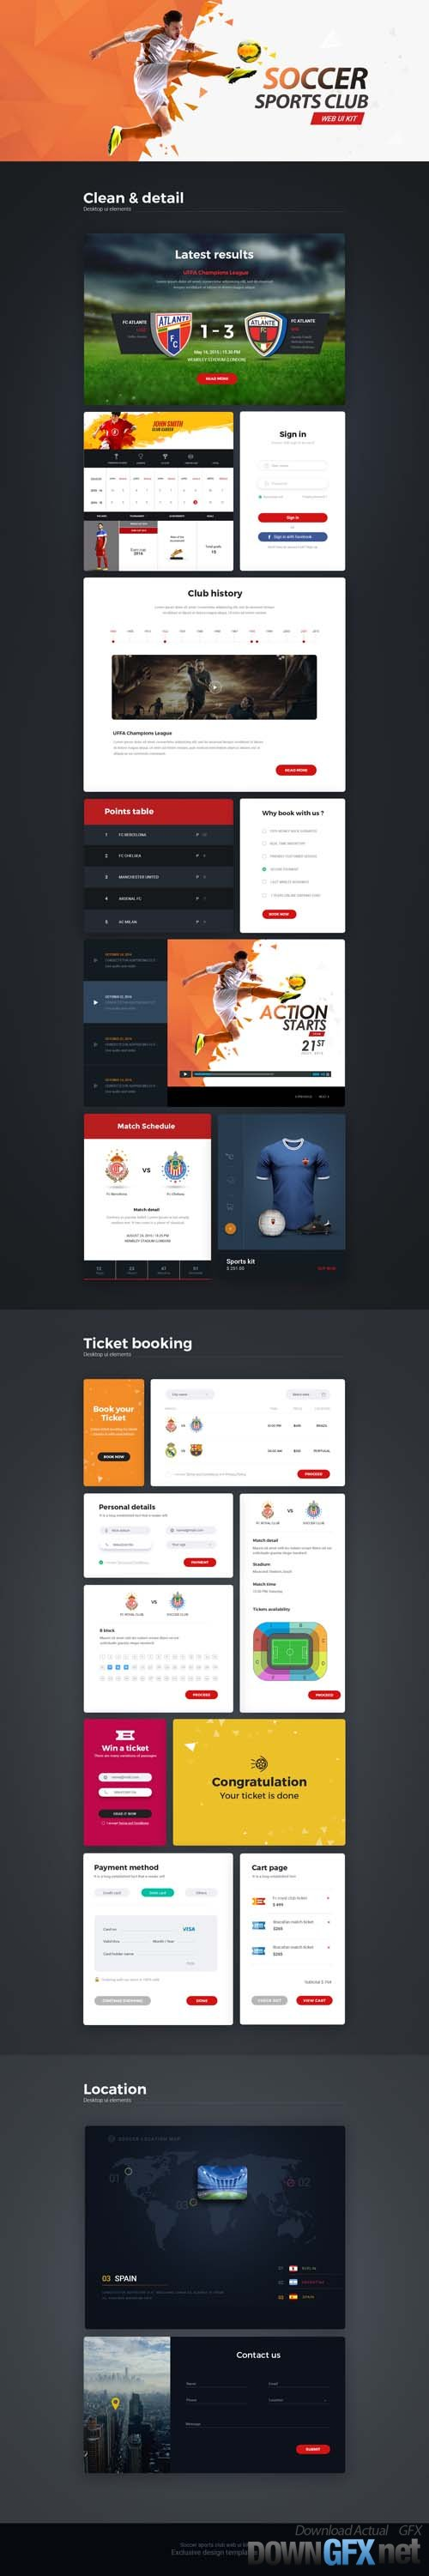 Soccer Sports Club Web UI Kit